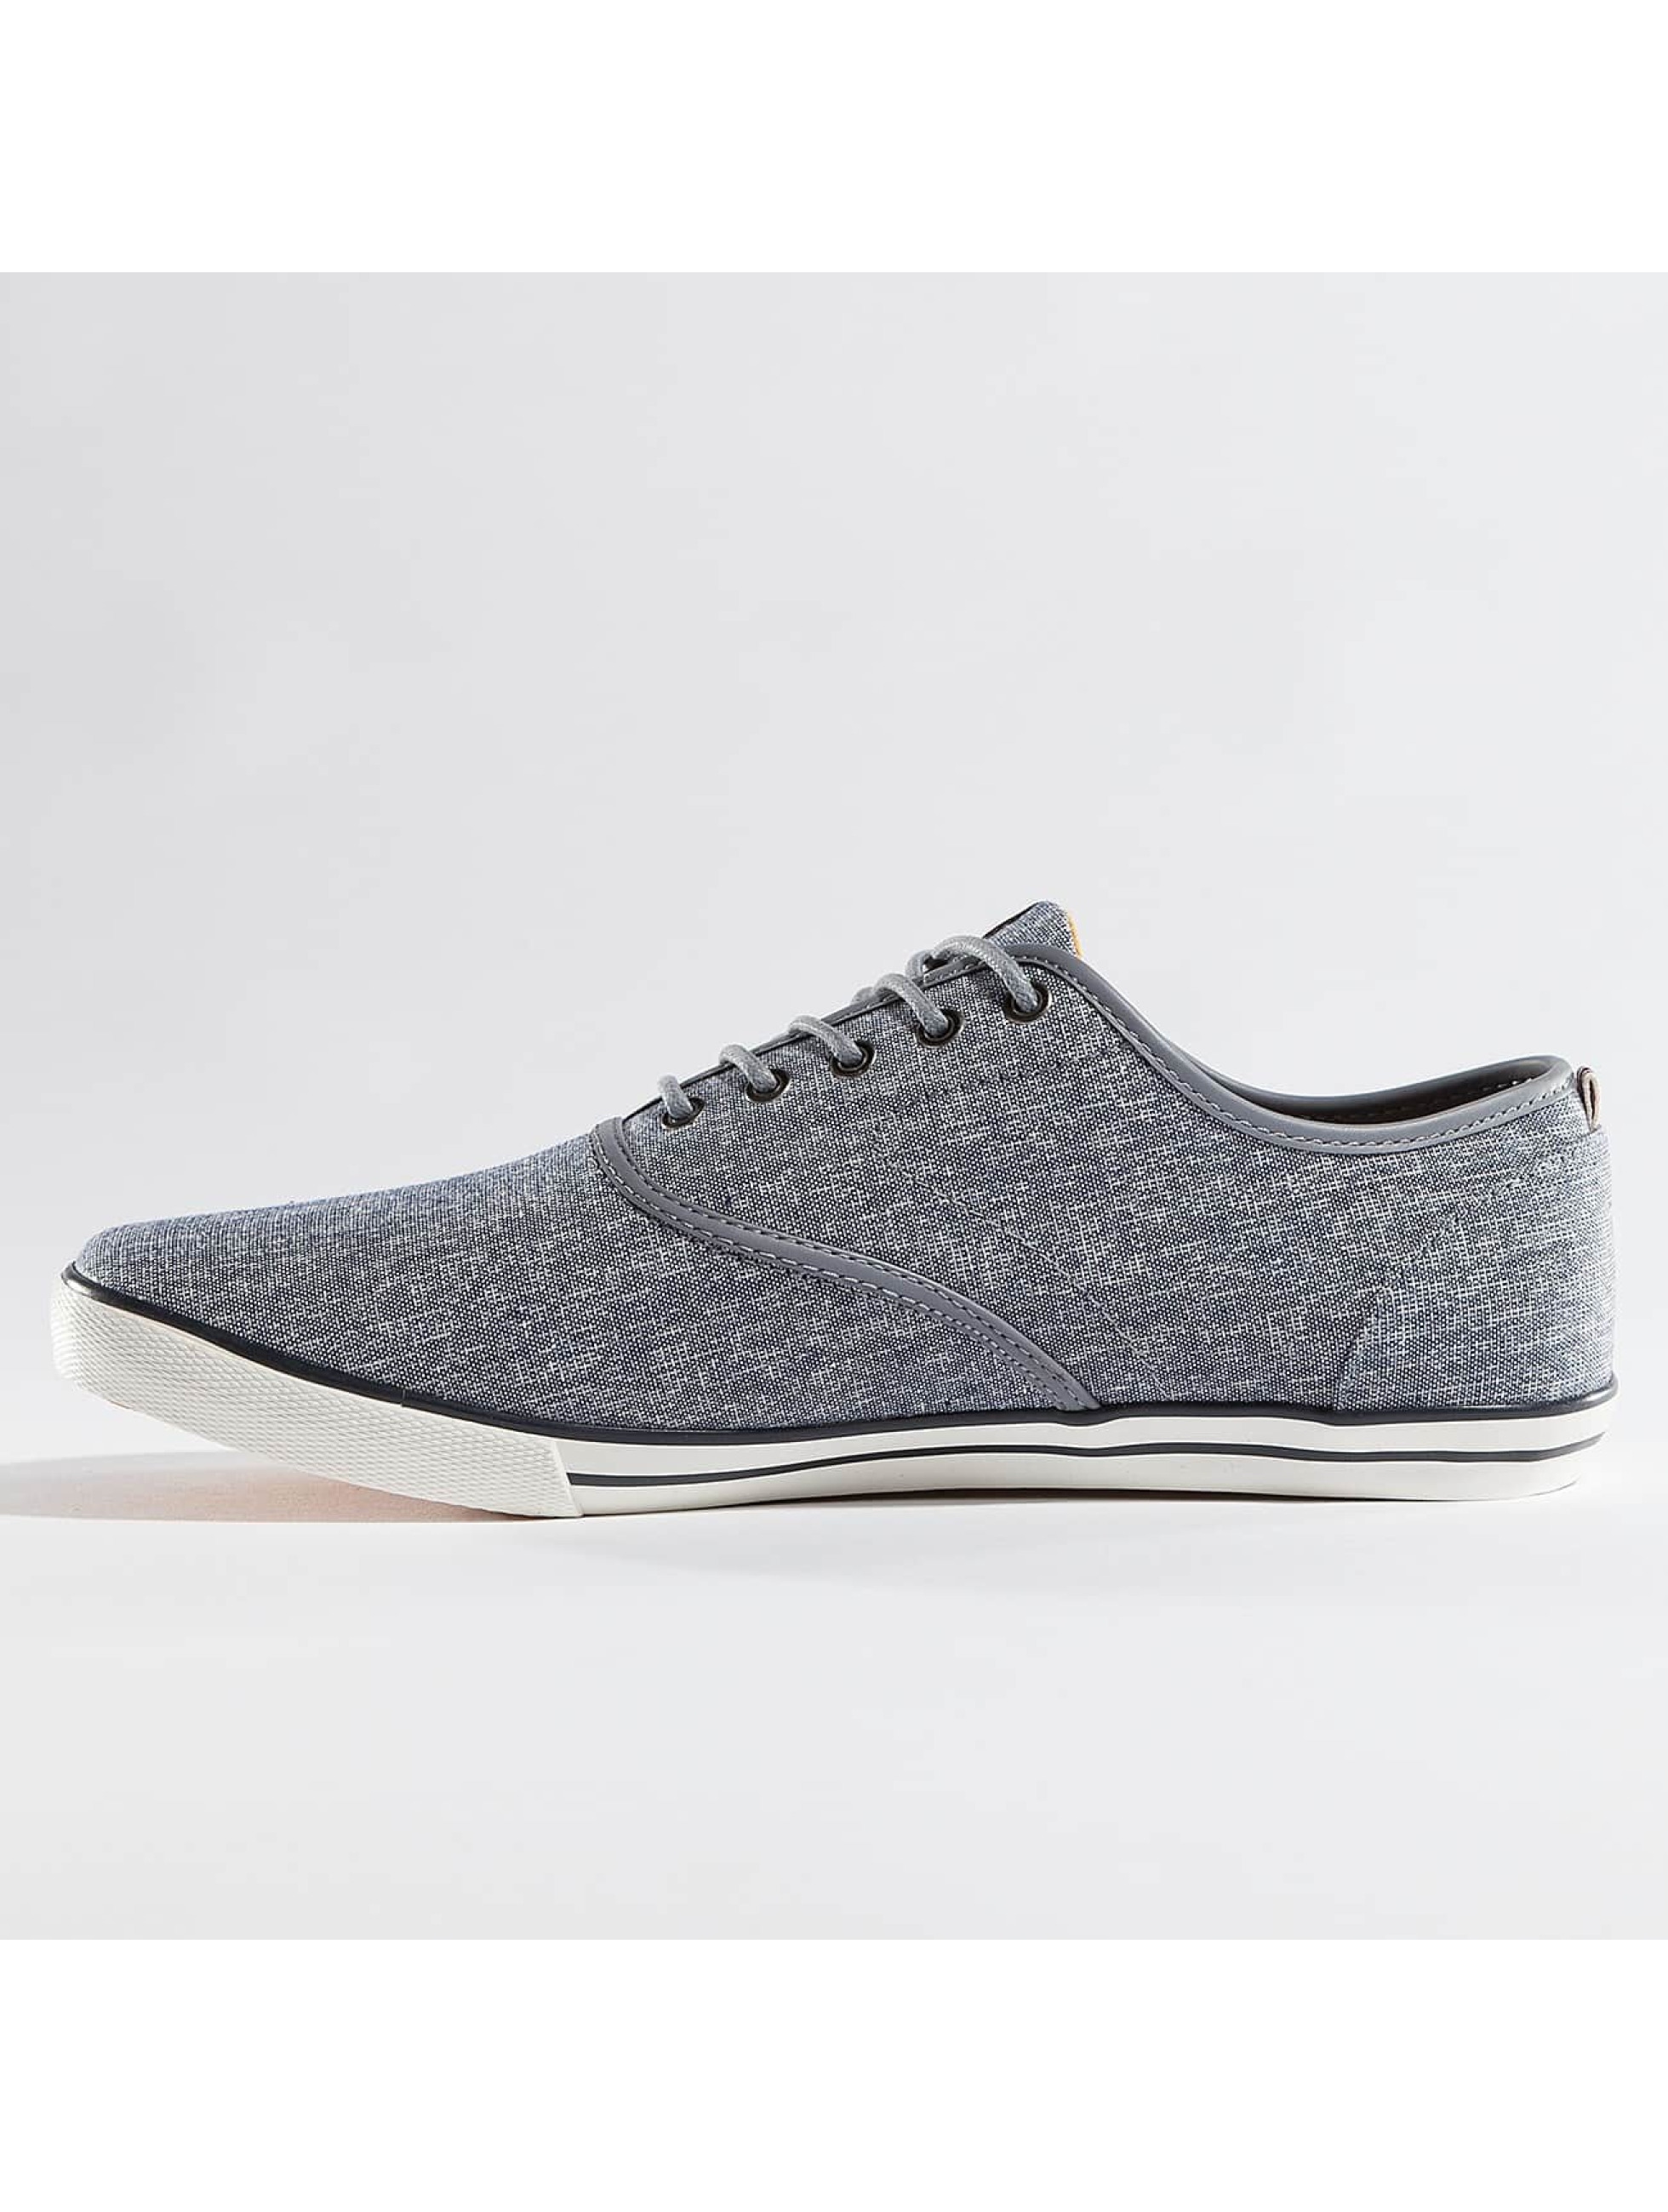 Jack & Jones Zapatillas de deporte jfwScorpion azul